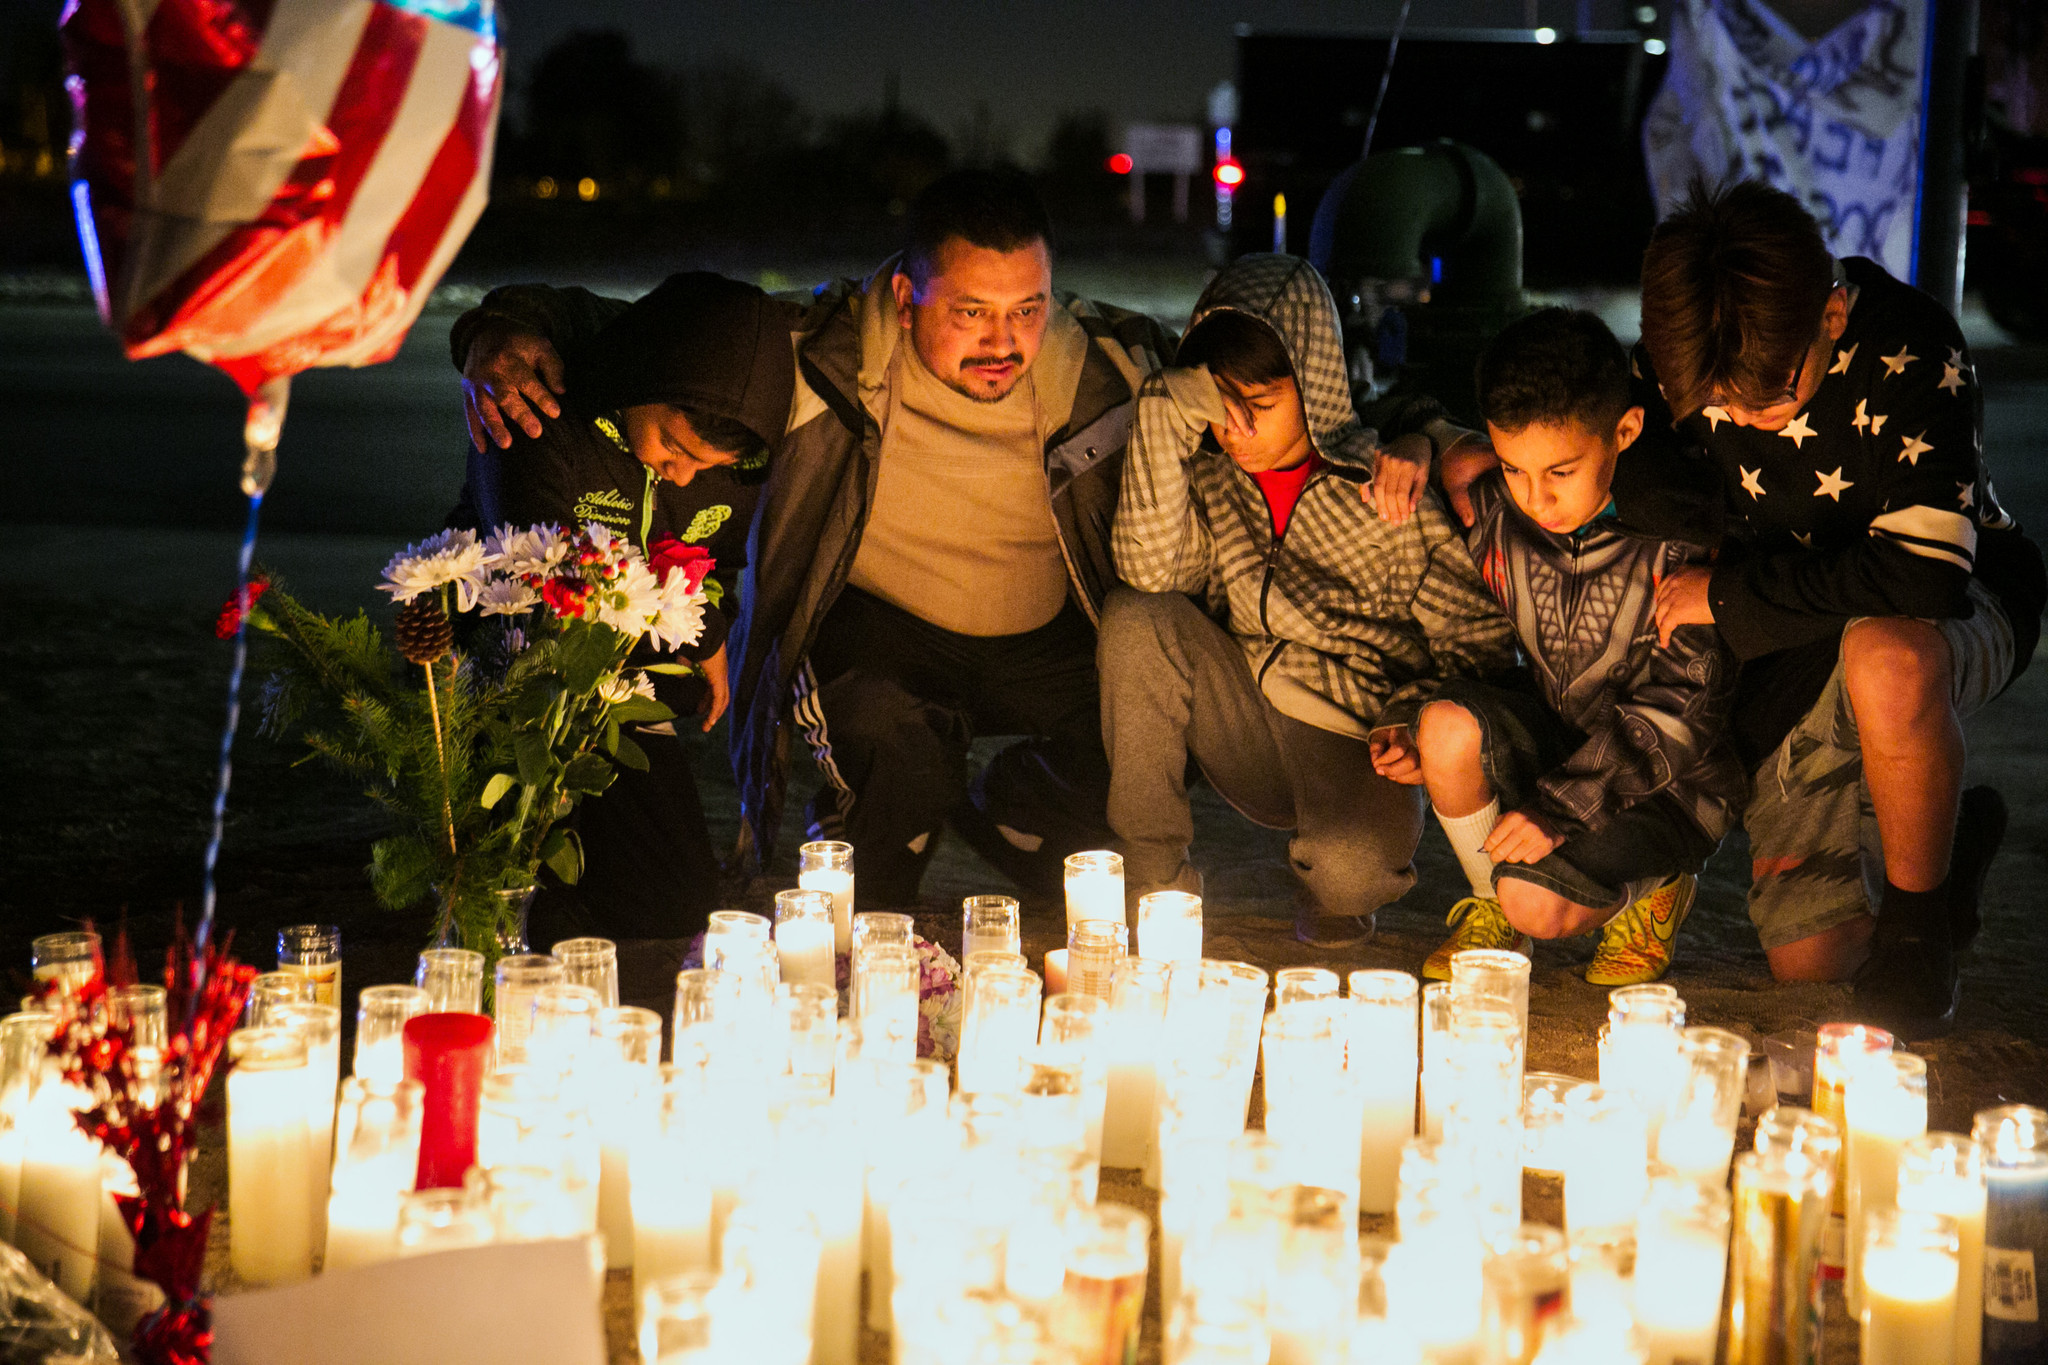 People kneel in prayer for victims in San Bernardino. (Marcus Yam / Los Angeles Times)